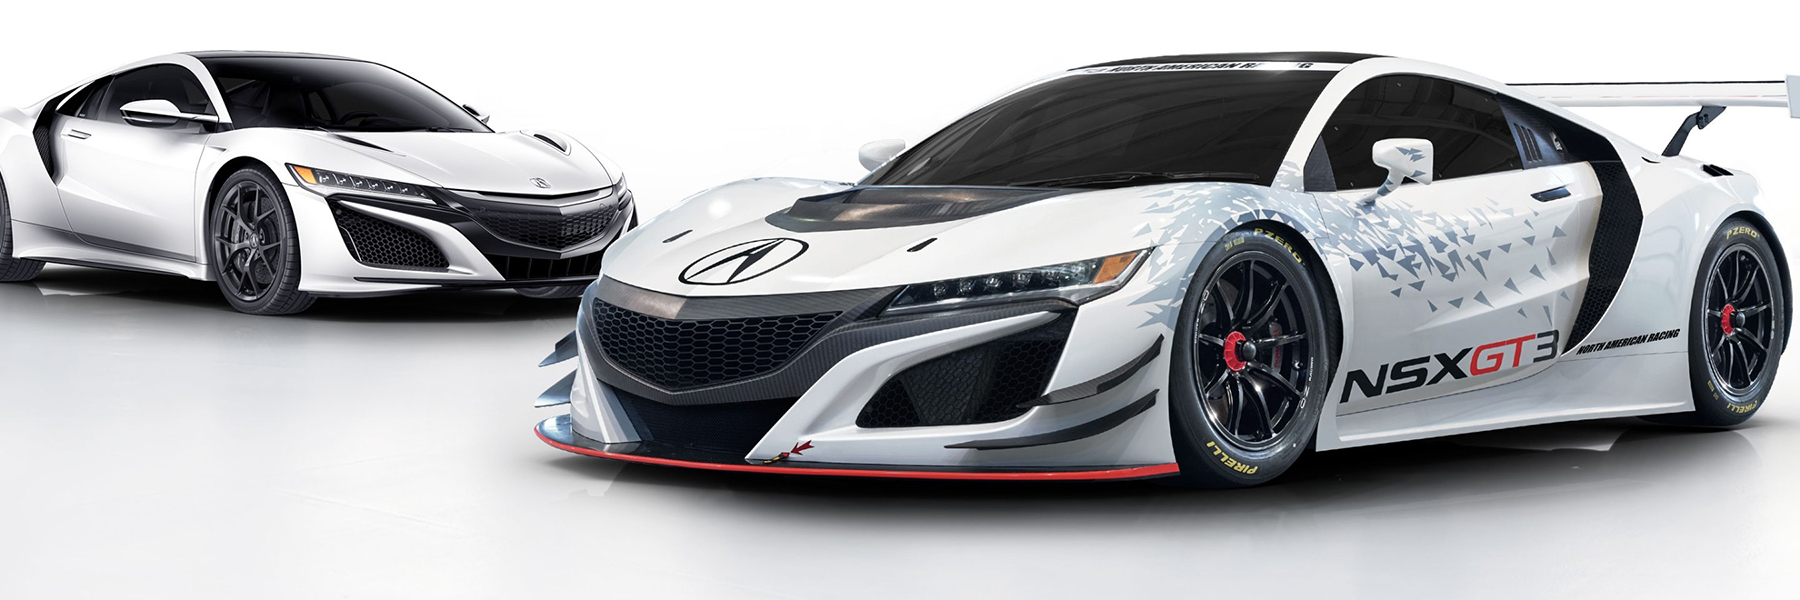 White 2018 Acura NSX and Acura NSX GT3